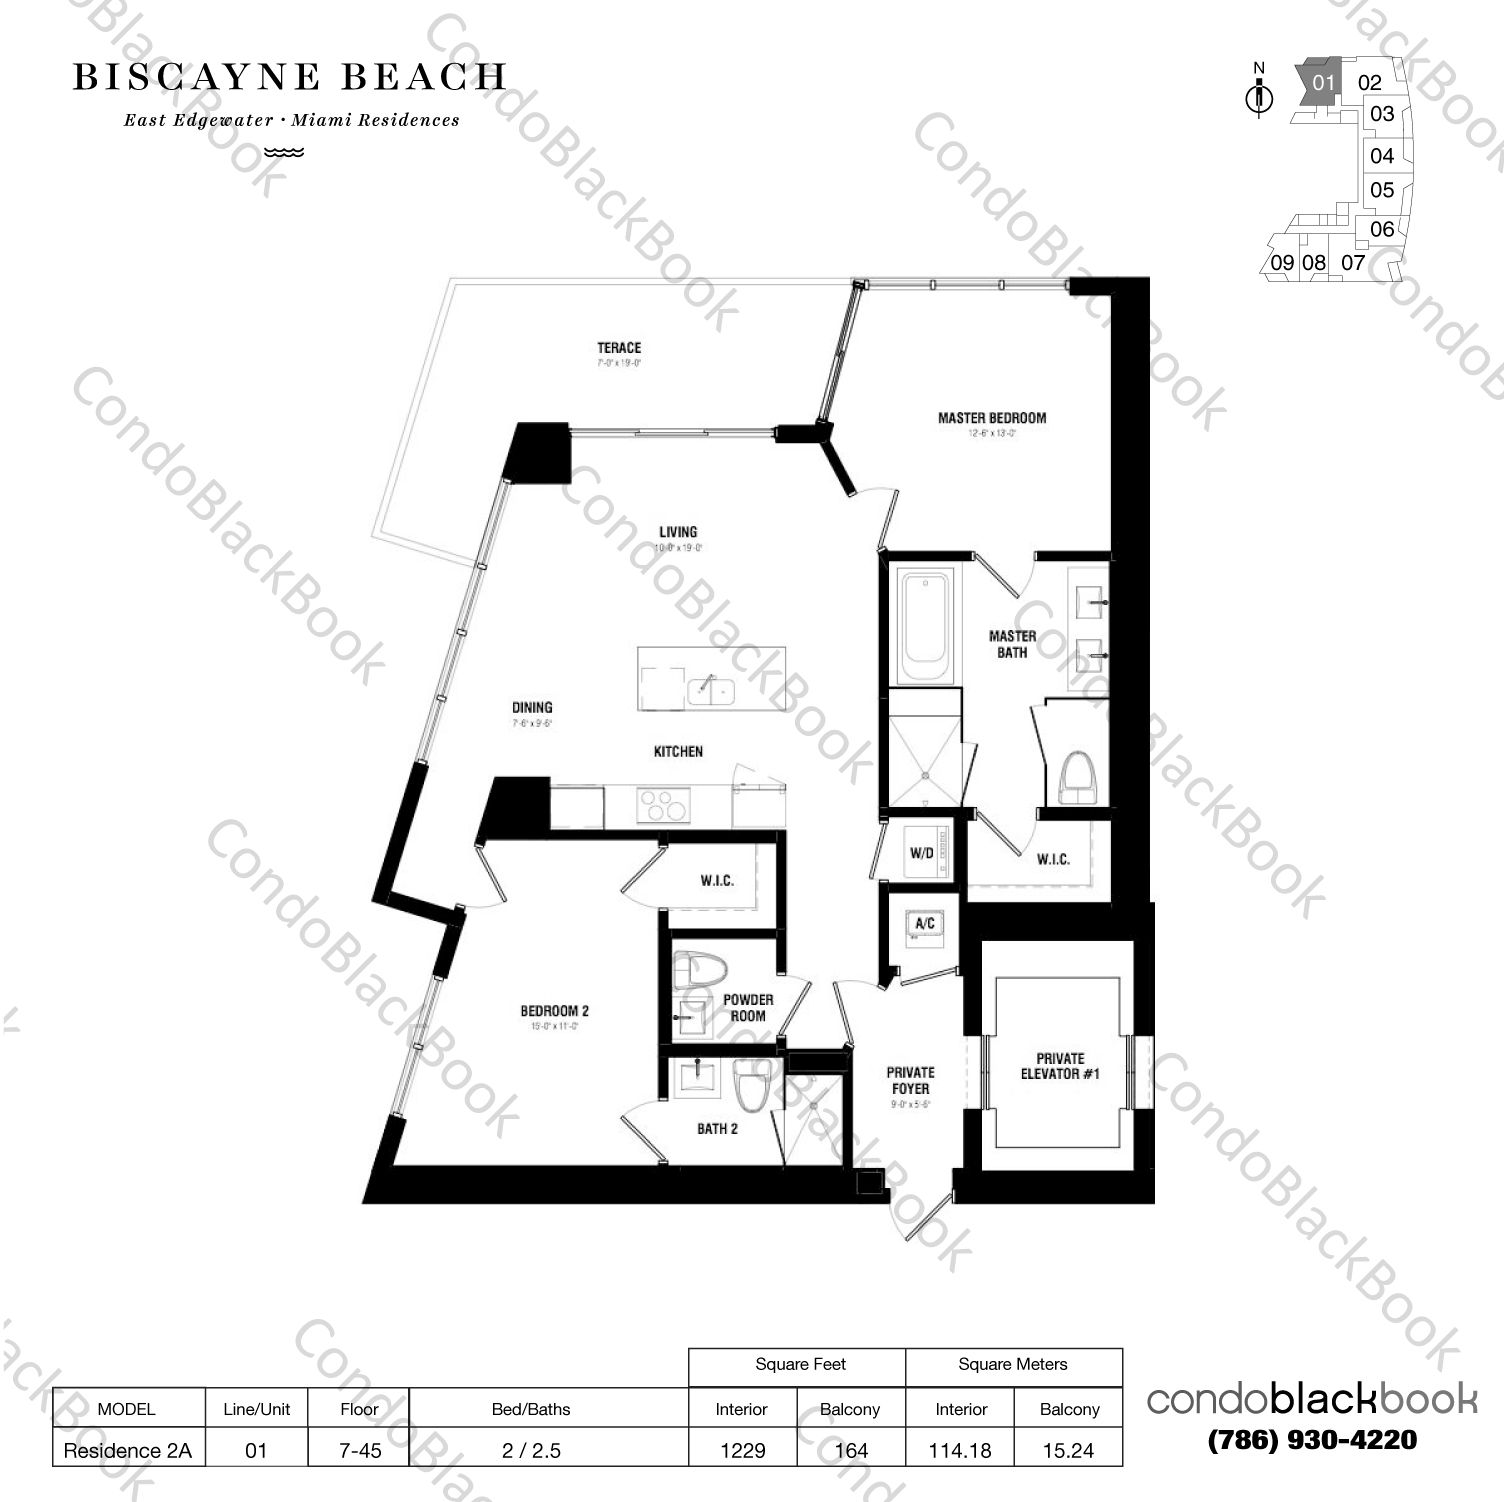 Biscayne beach unit 1101 condo for sale in edgewater for Floor plans 900 biscayne